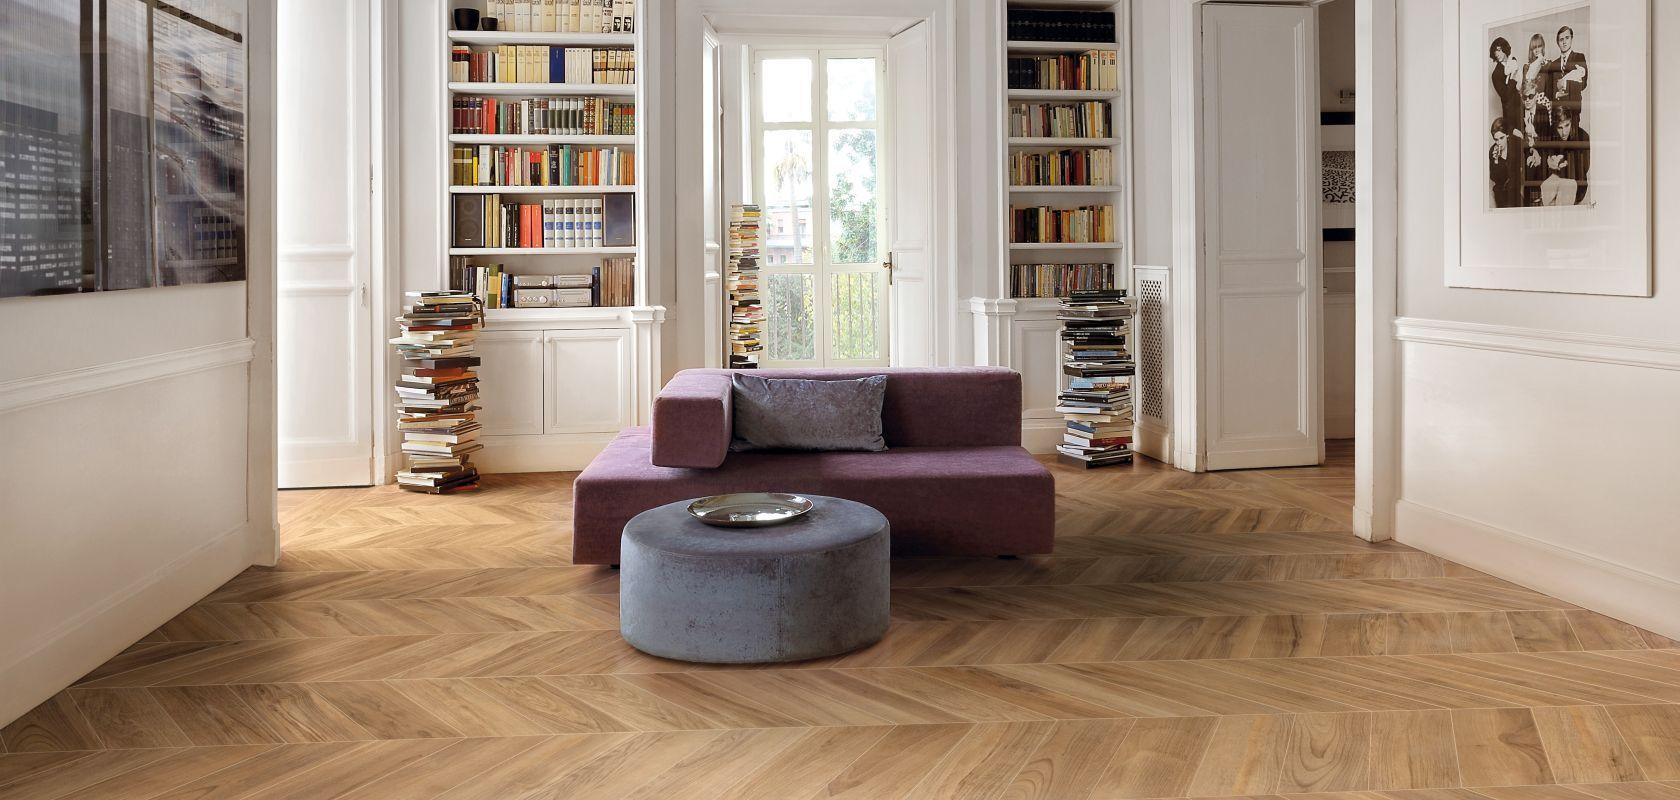 Carrelage imitation parquet neutre private room porto venere - Piastrelle in graniglia ...